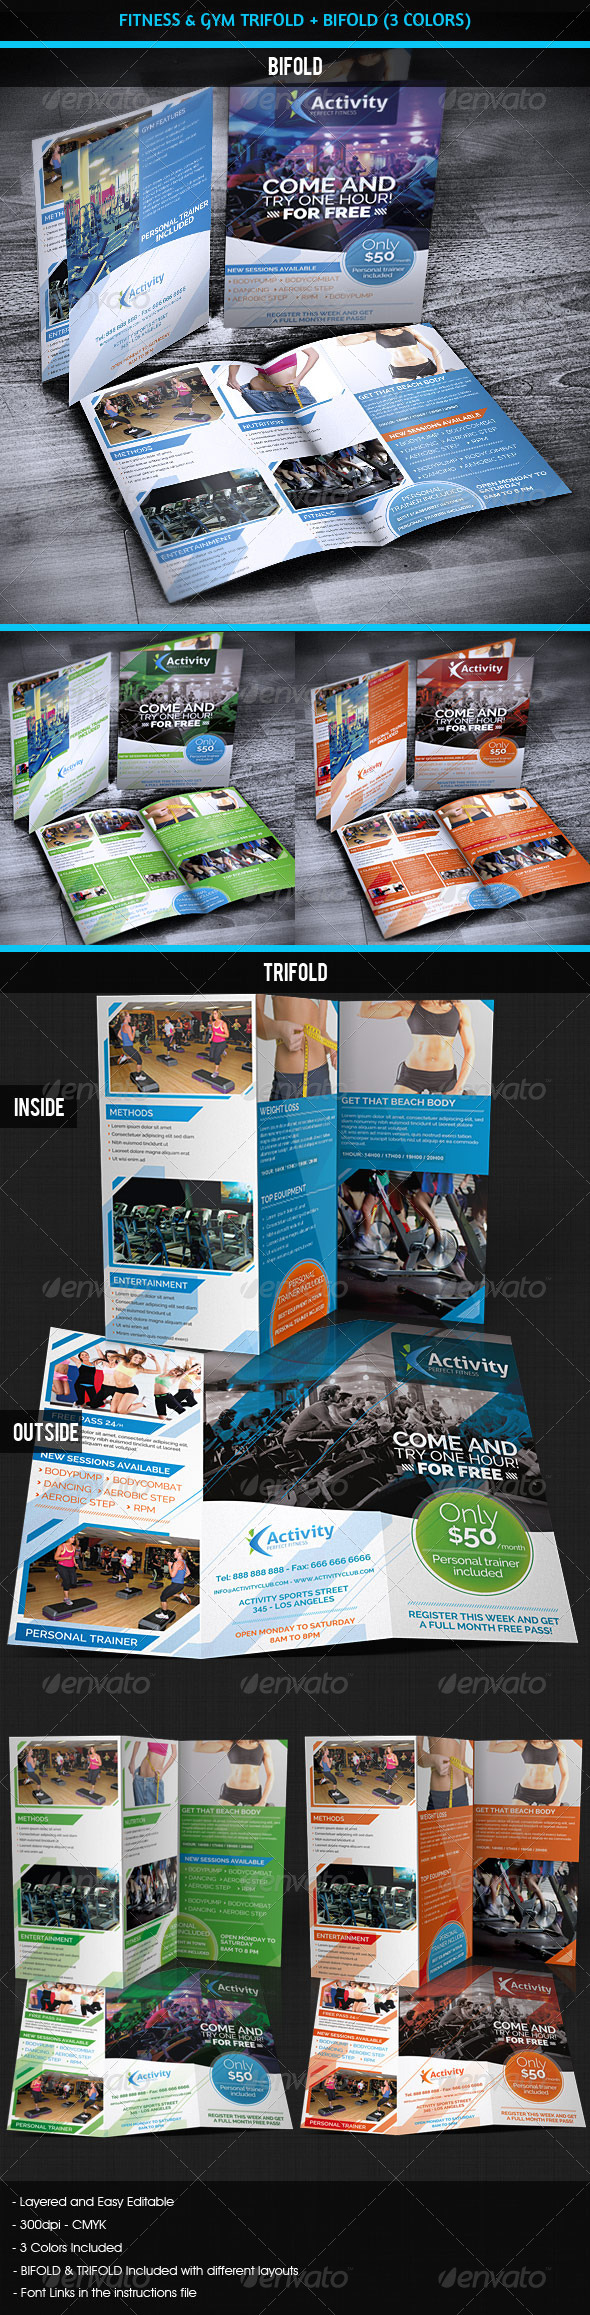 Fitness & Gym - Sports Bifold + Trifold - Brochures Print Templates